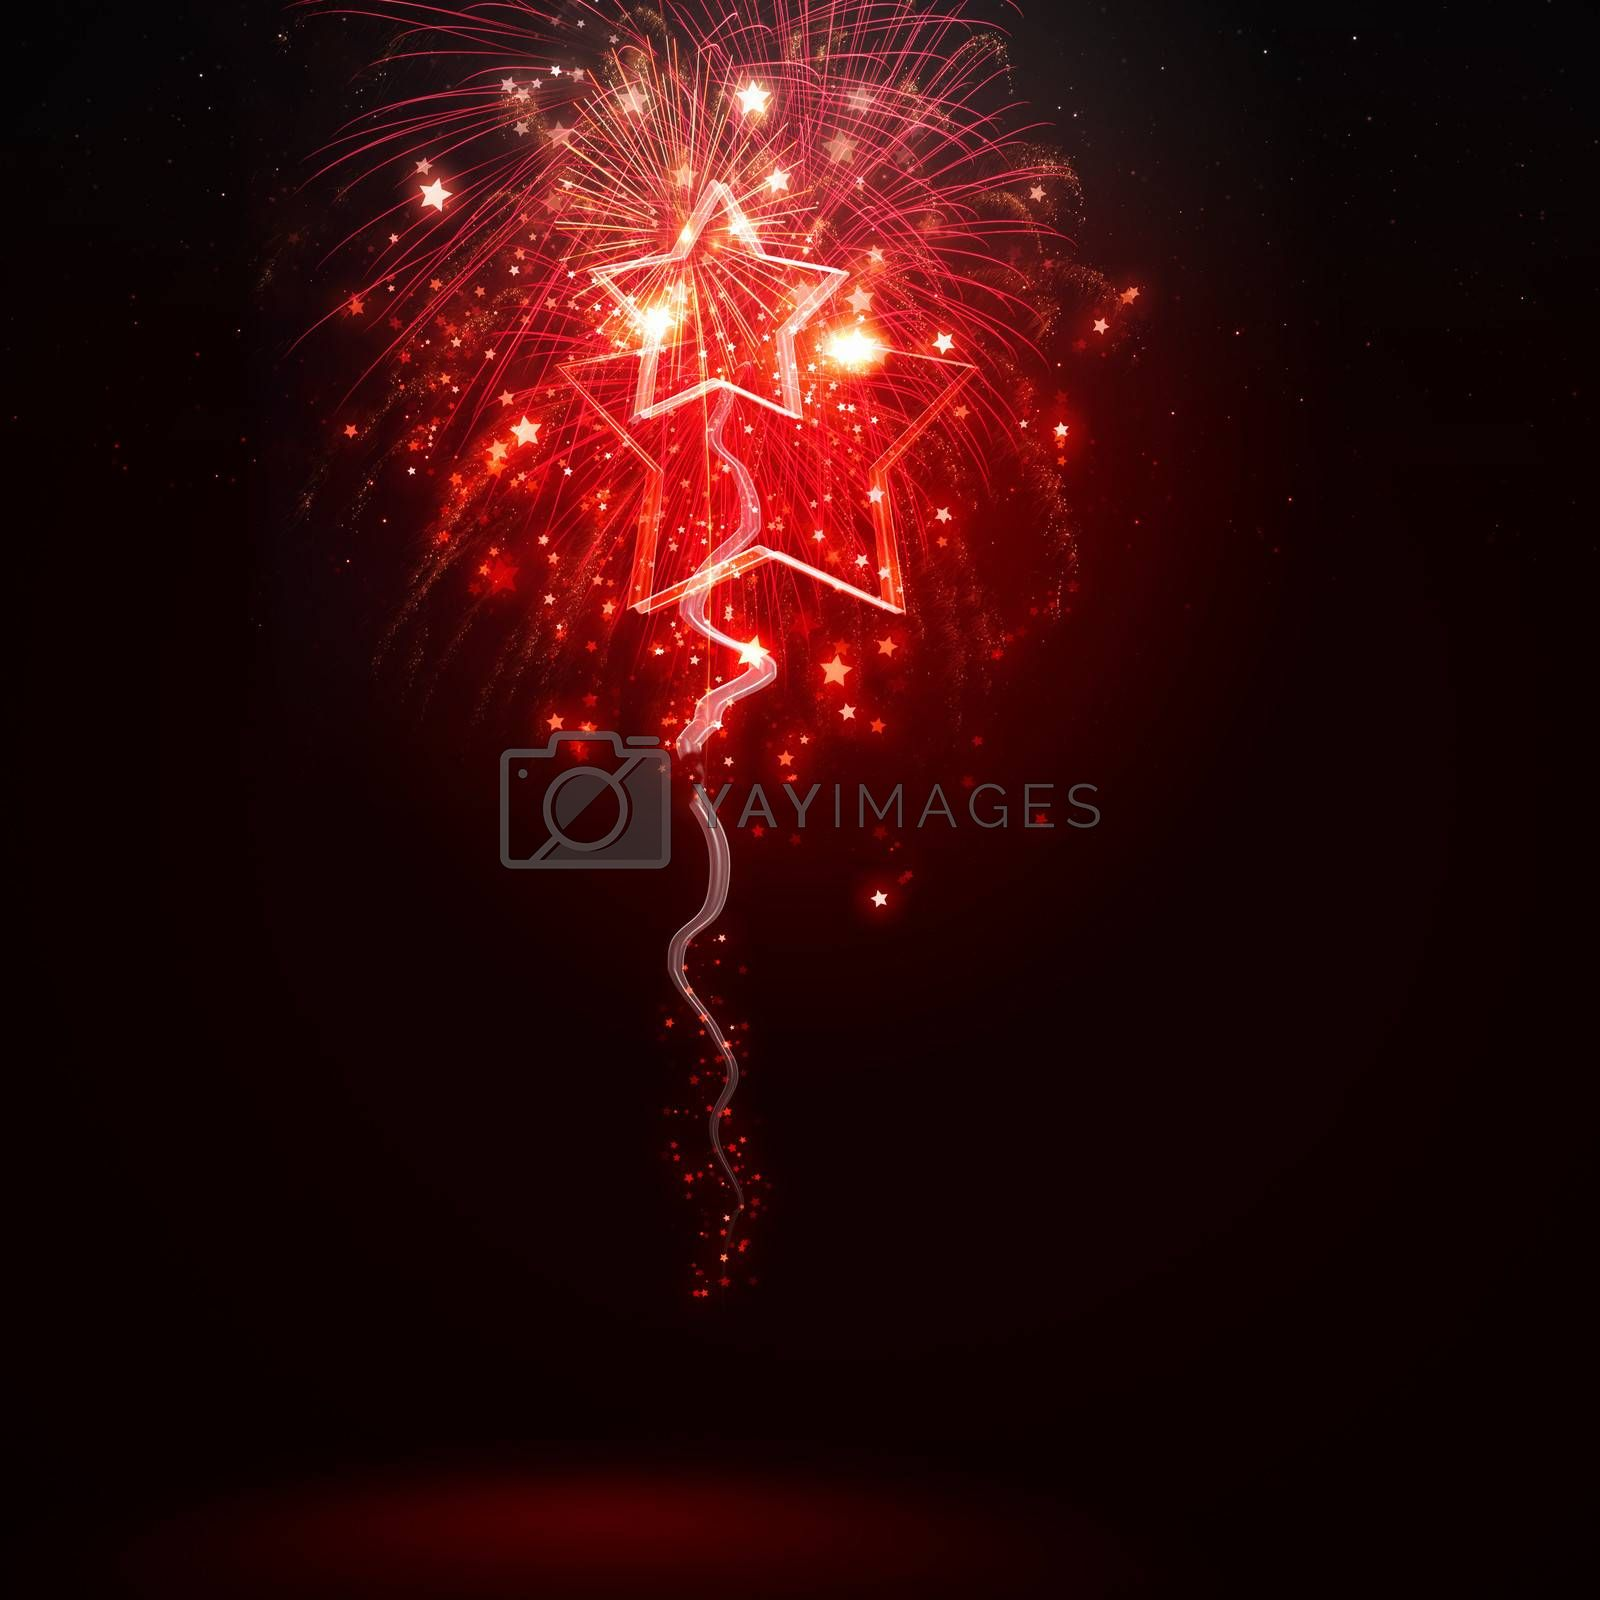 Background image with red fireworks against dark background